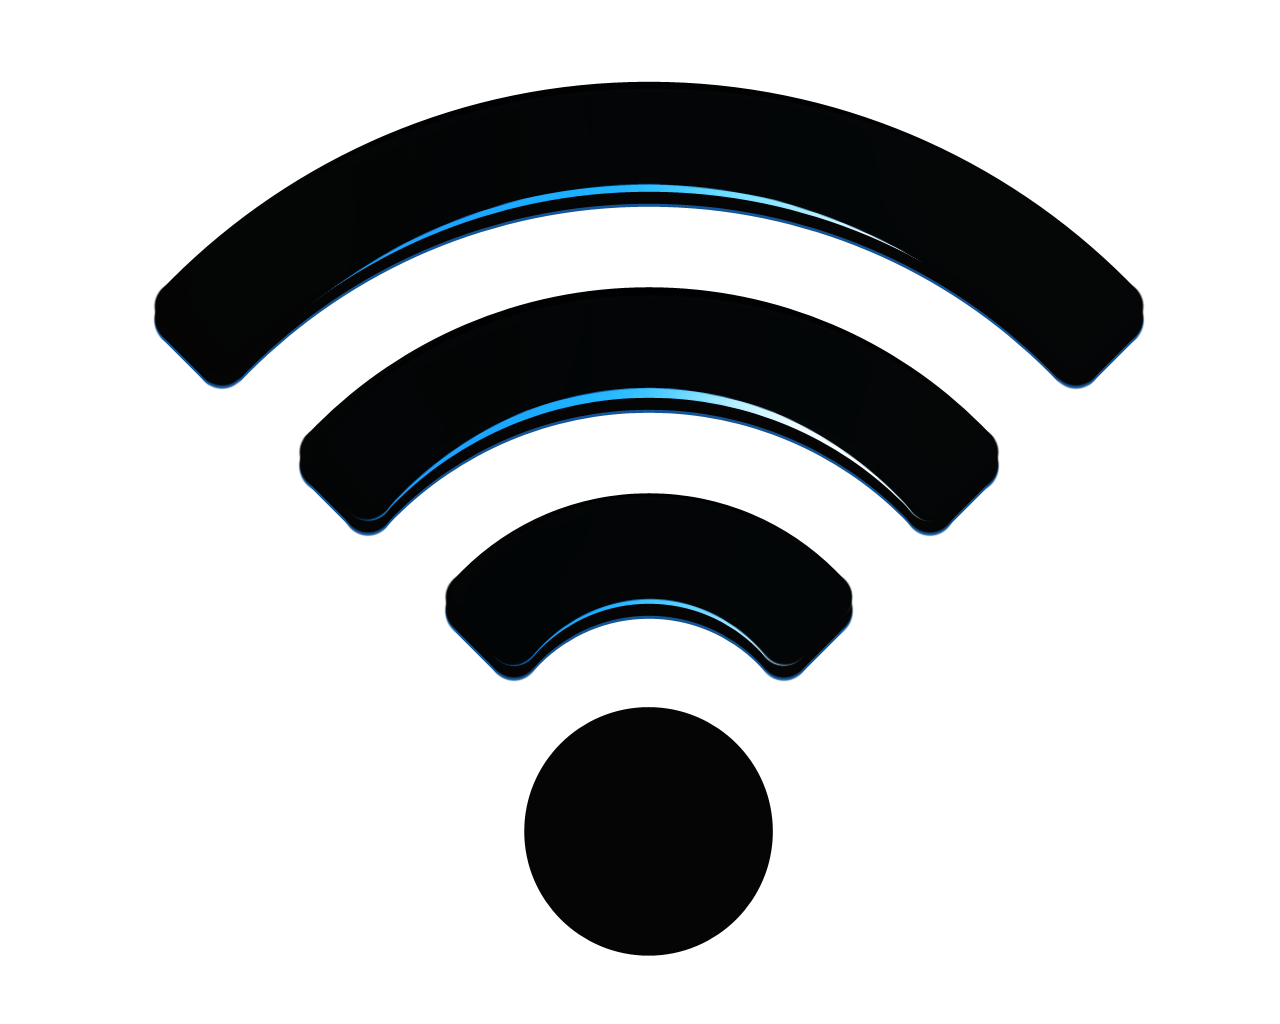 File:Wireless-icon.png - Wifi PNG